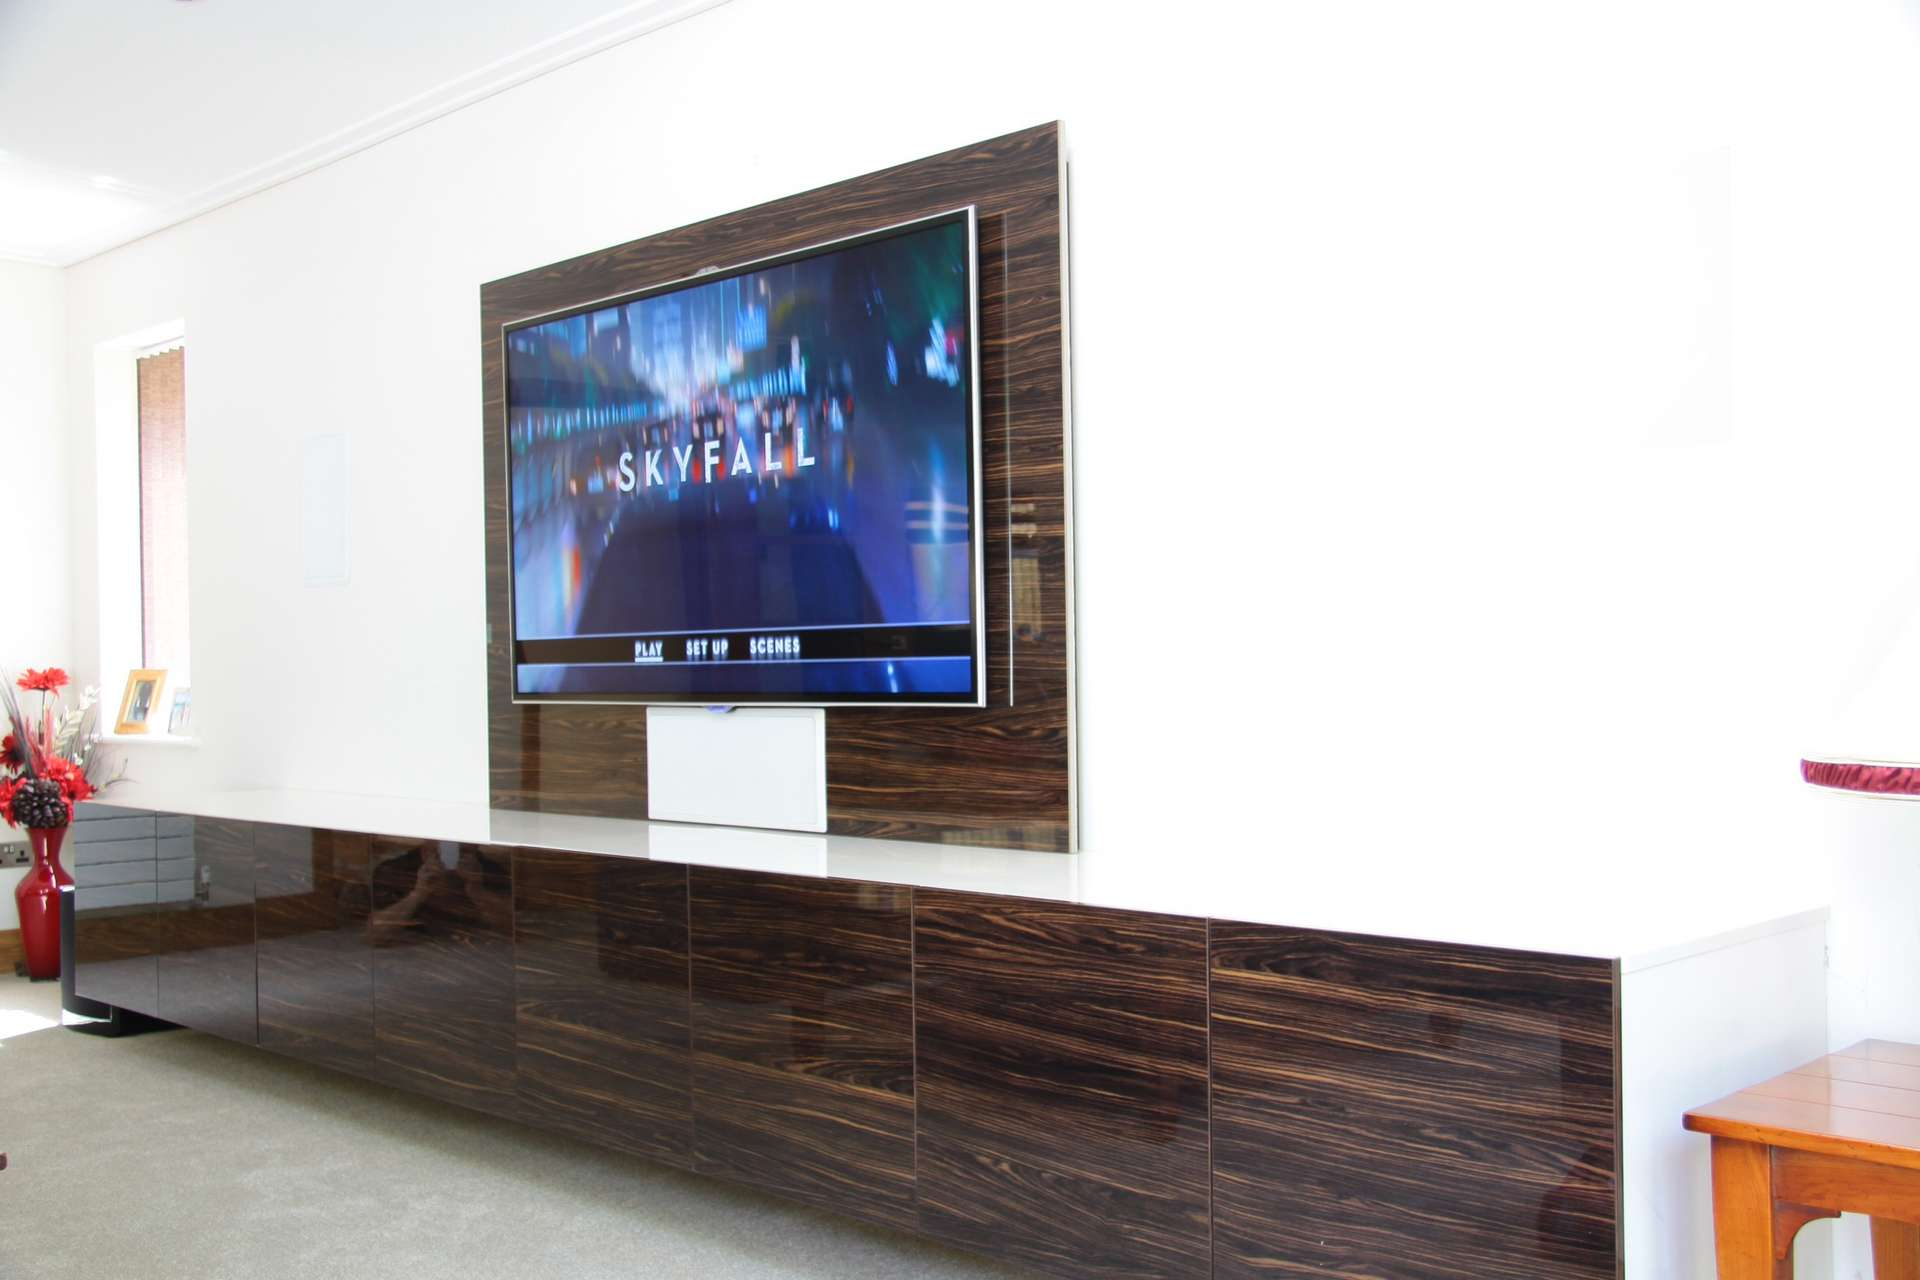 Wall mounted TV with floating media storage